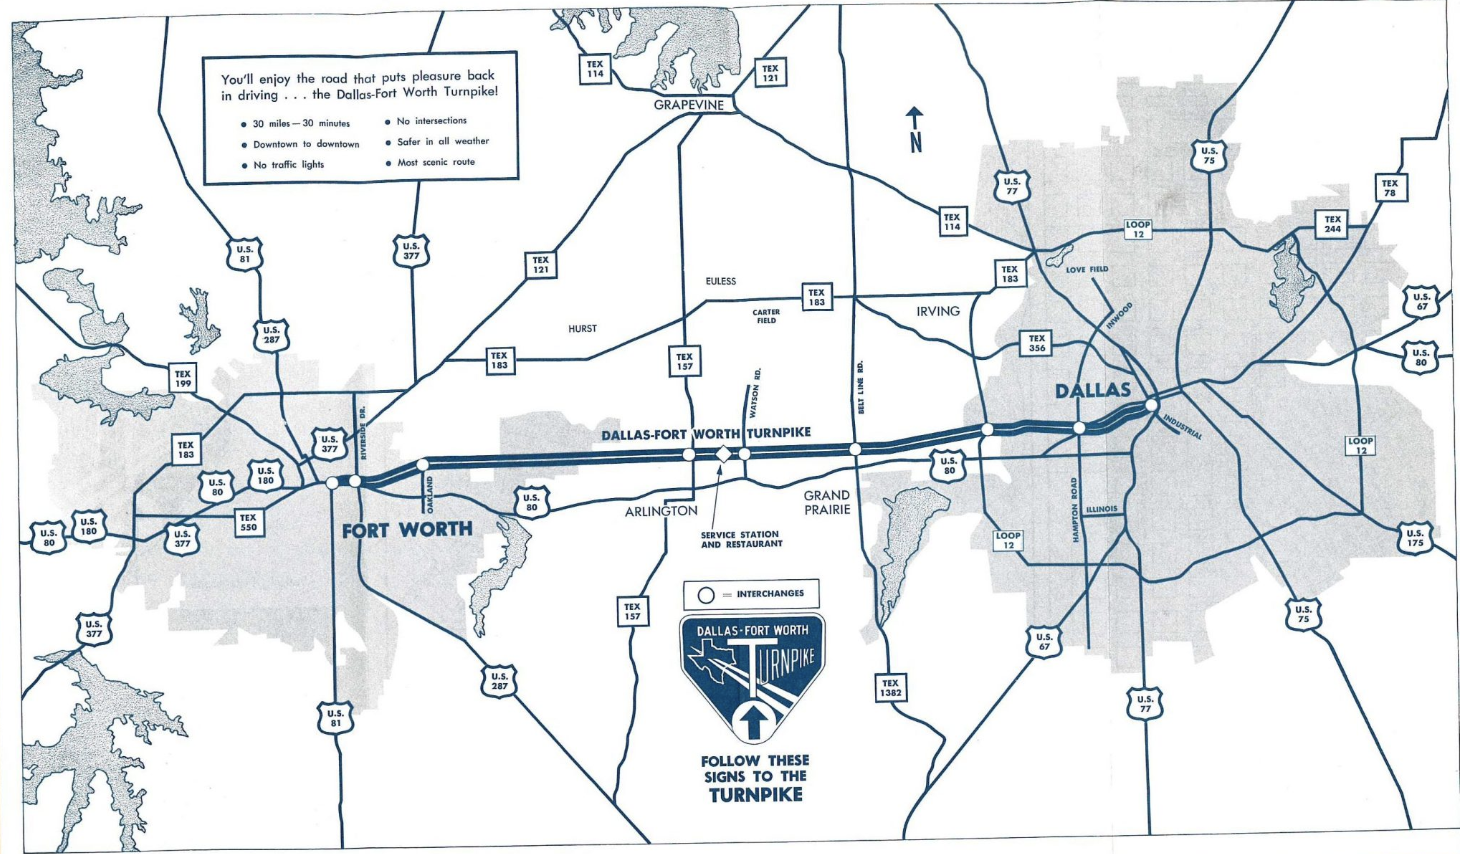 This map includes the DFW Turnpike as well as shows other highway systems and how they all connect.